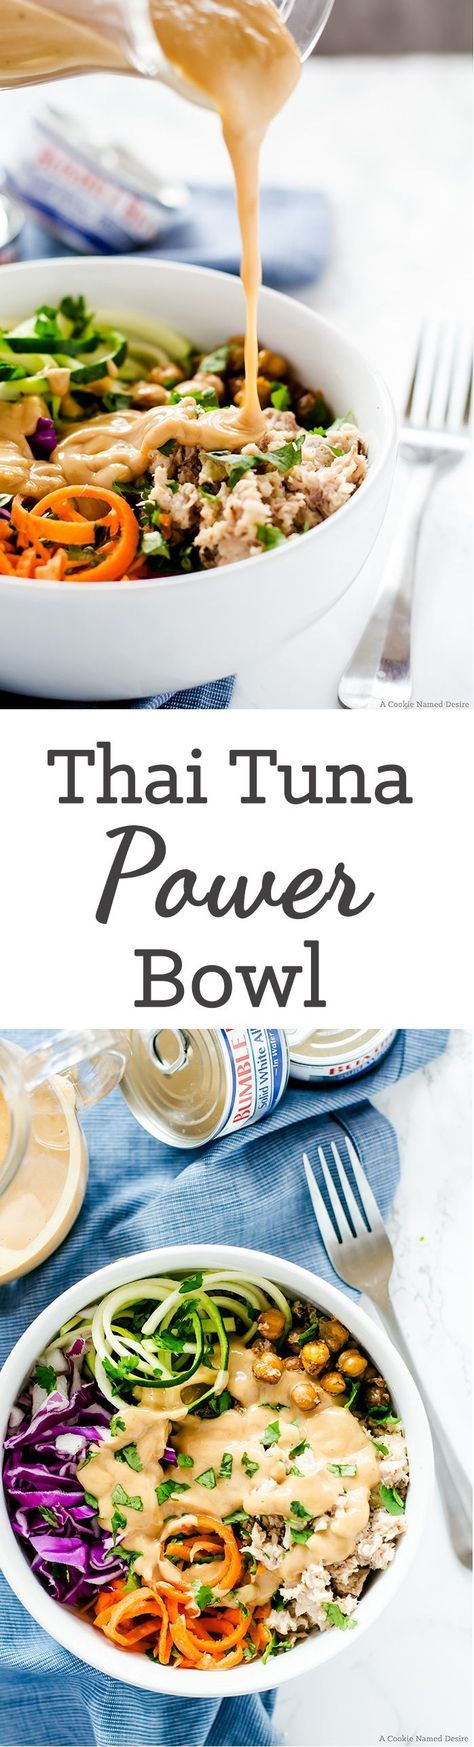 Healthy Thai Tuna Power Bowls. I like the ideas and recipes involved here. With perhaps a couple modifications, the Thai peanut sauce would be the great top off to this power bowl. I'd probably buy fresh wild caught tuna and sear it...wouldn't need much! Could do salmon, too. Could roast sweet potato cubes, but also love the shredded/spiralized zucchini and carrot. Yum for roasted chickpeas, too!!